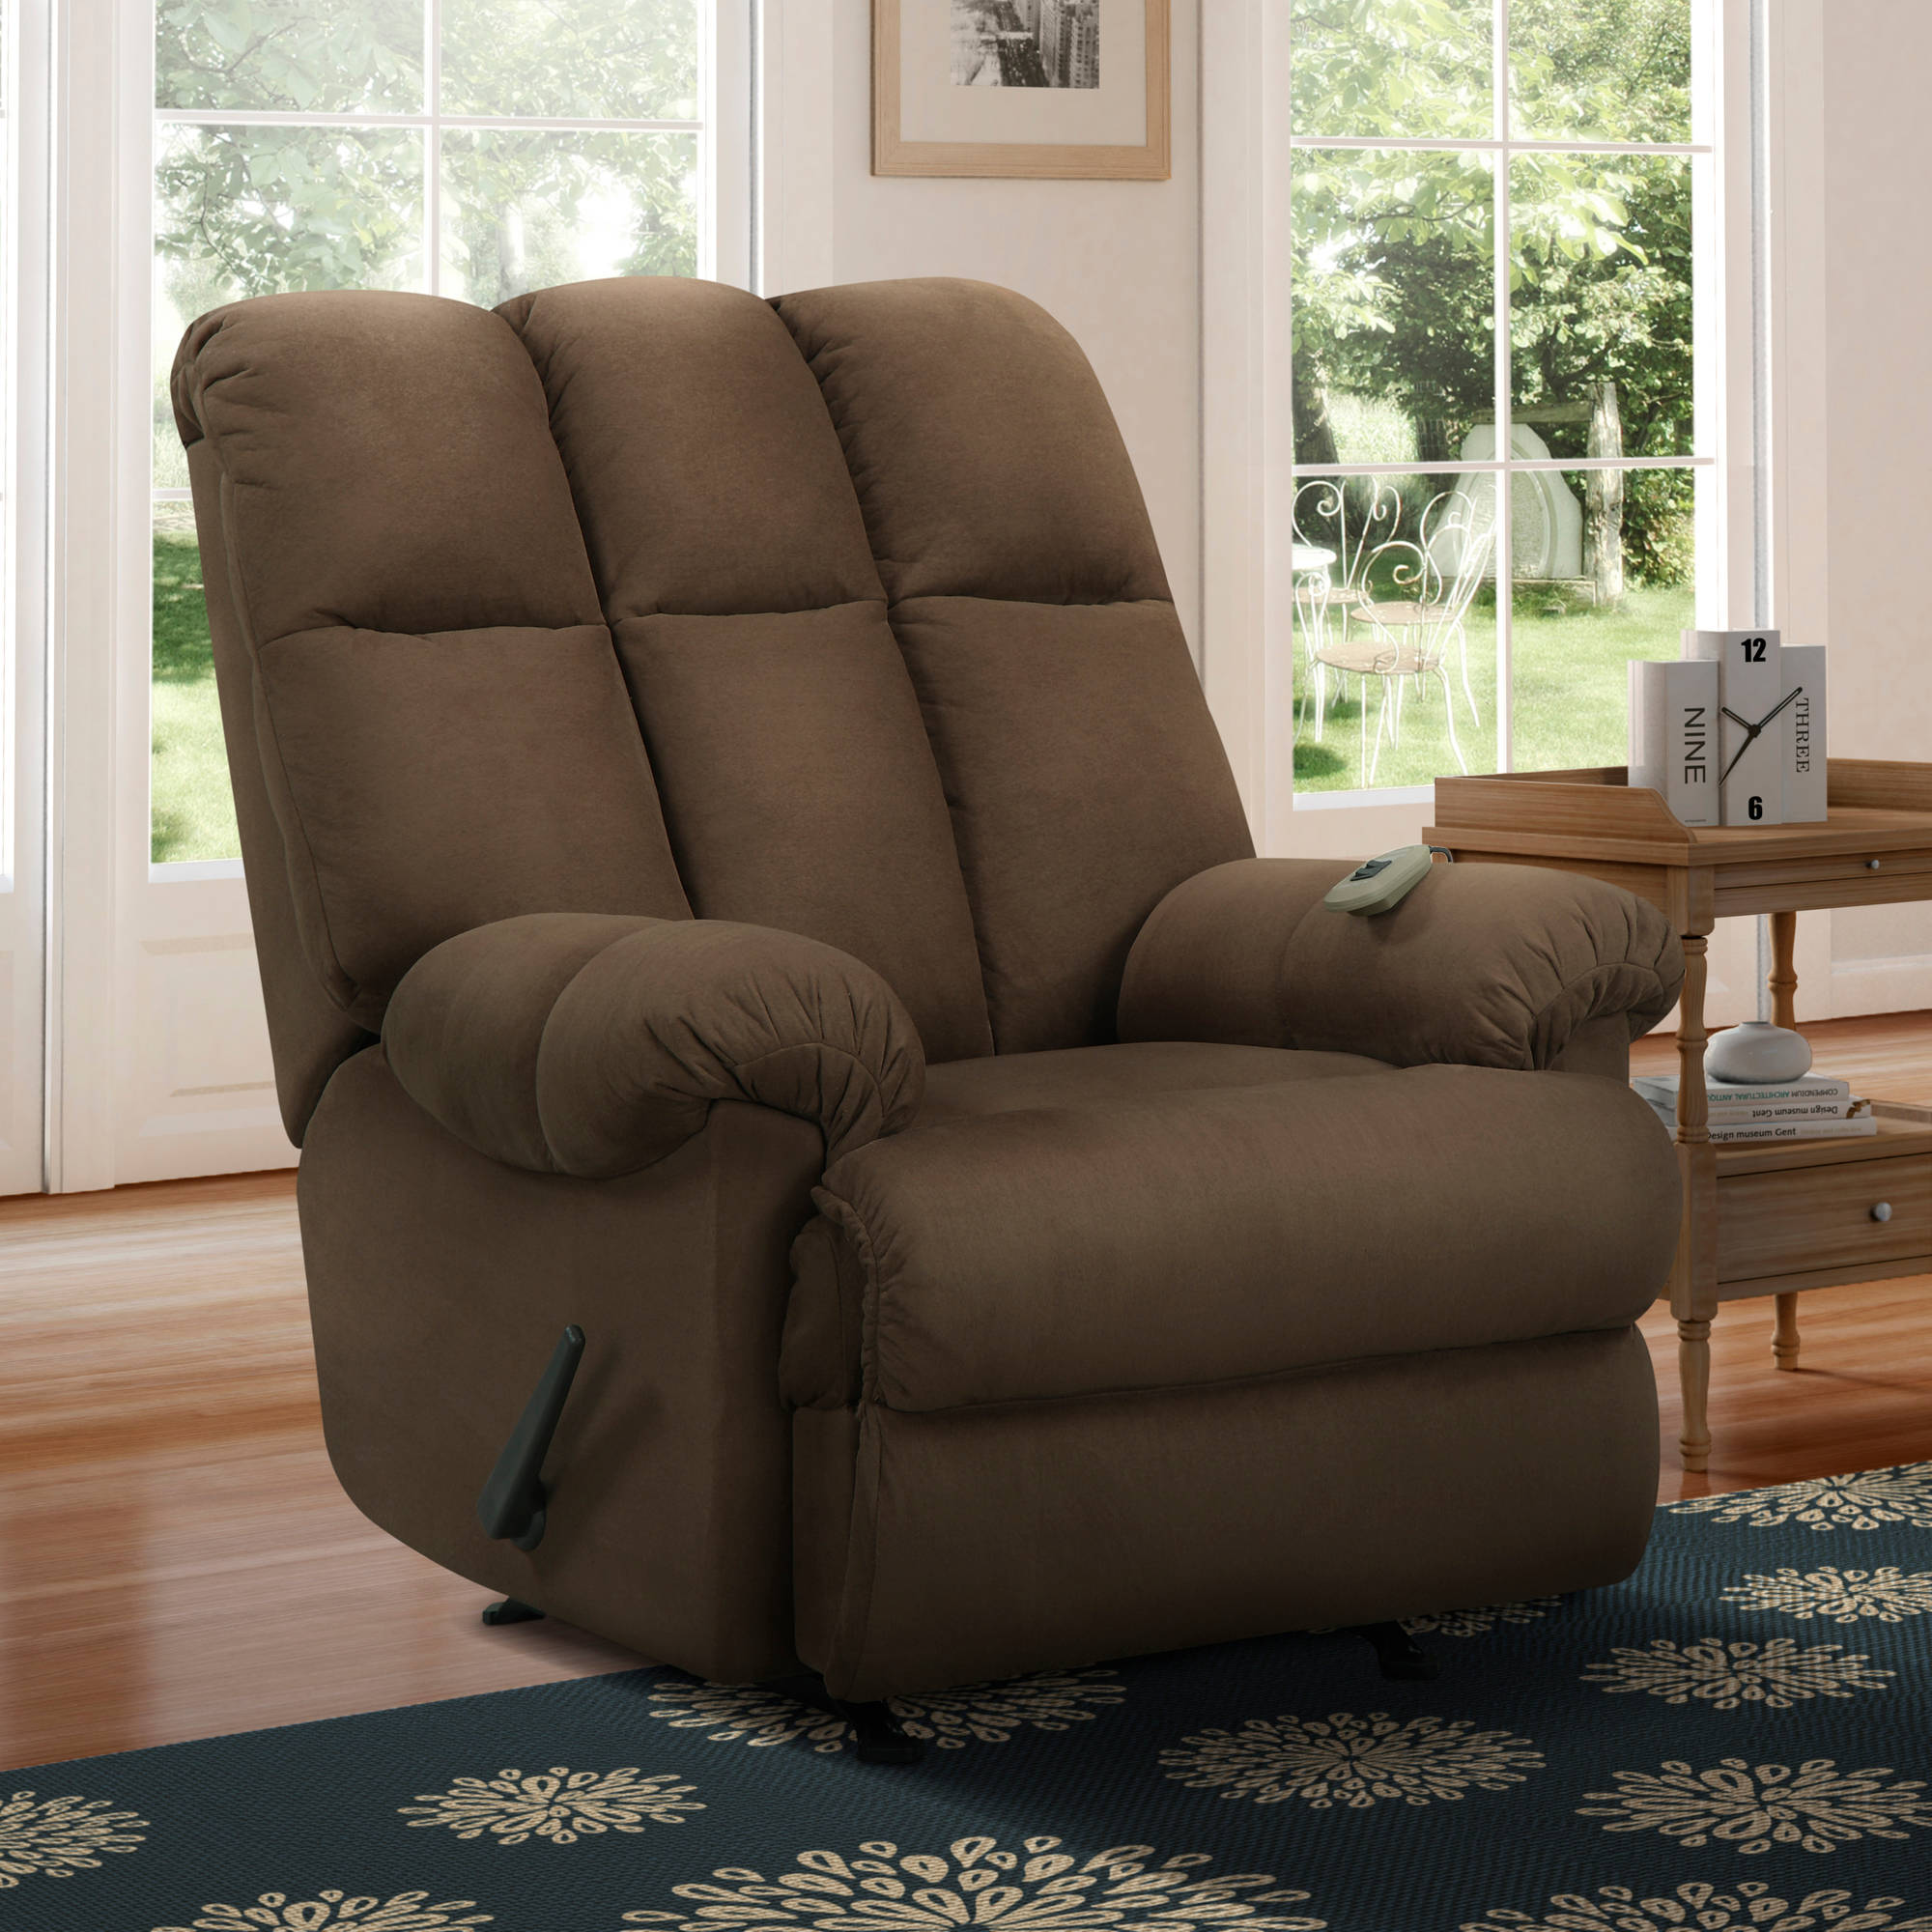 Dorel living padded massage rocker recliner multiple colors walmart com